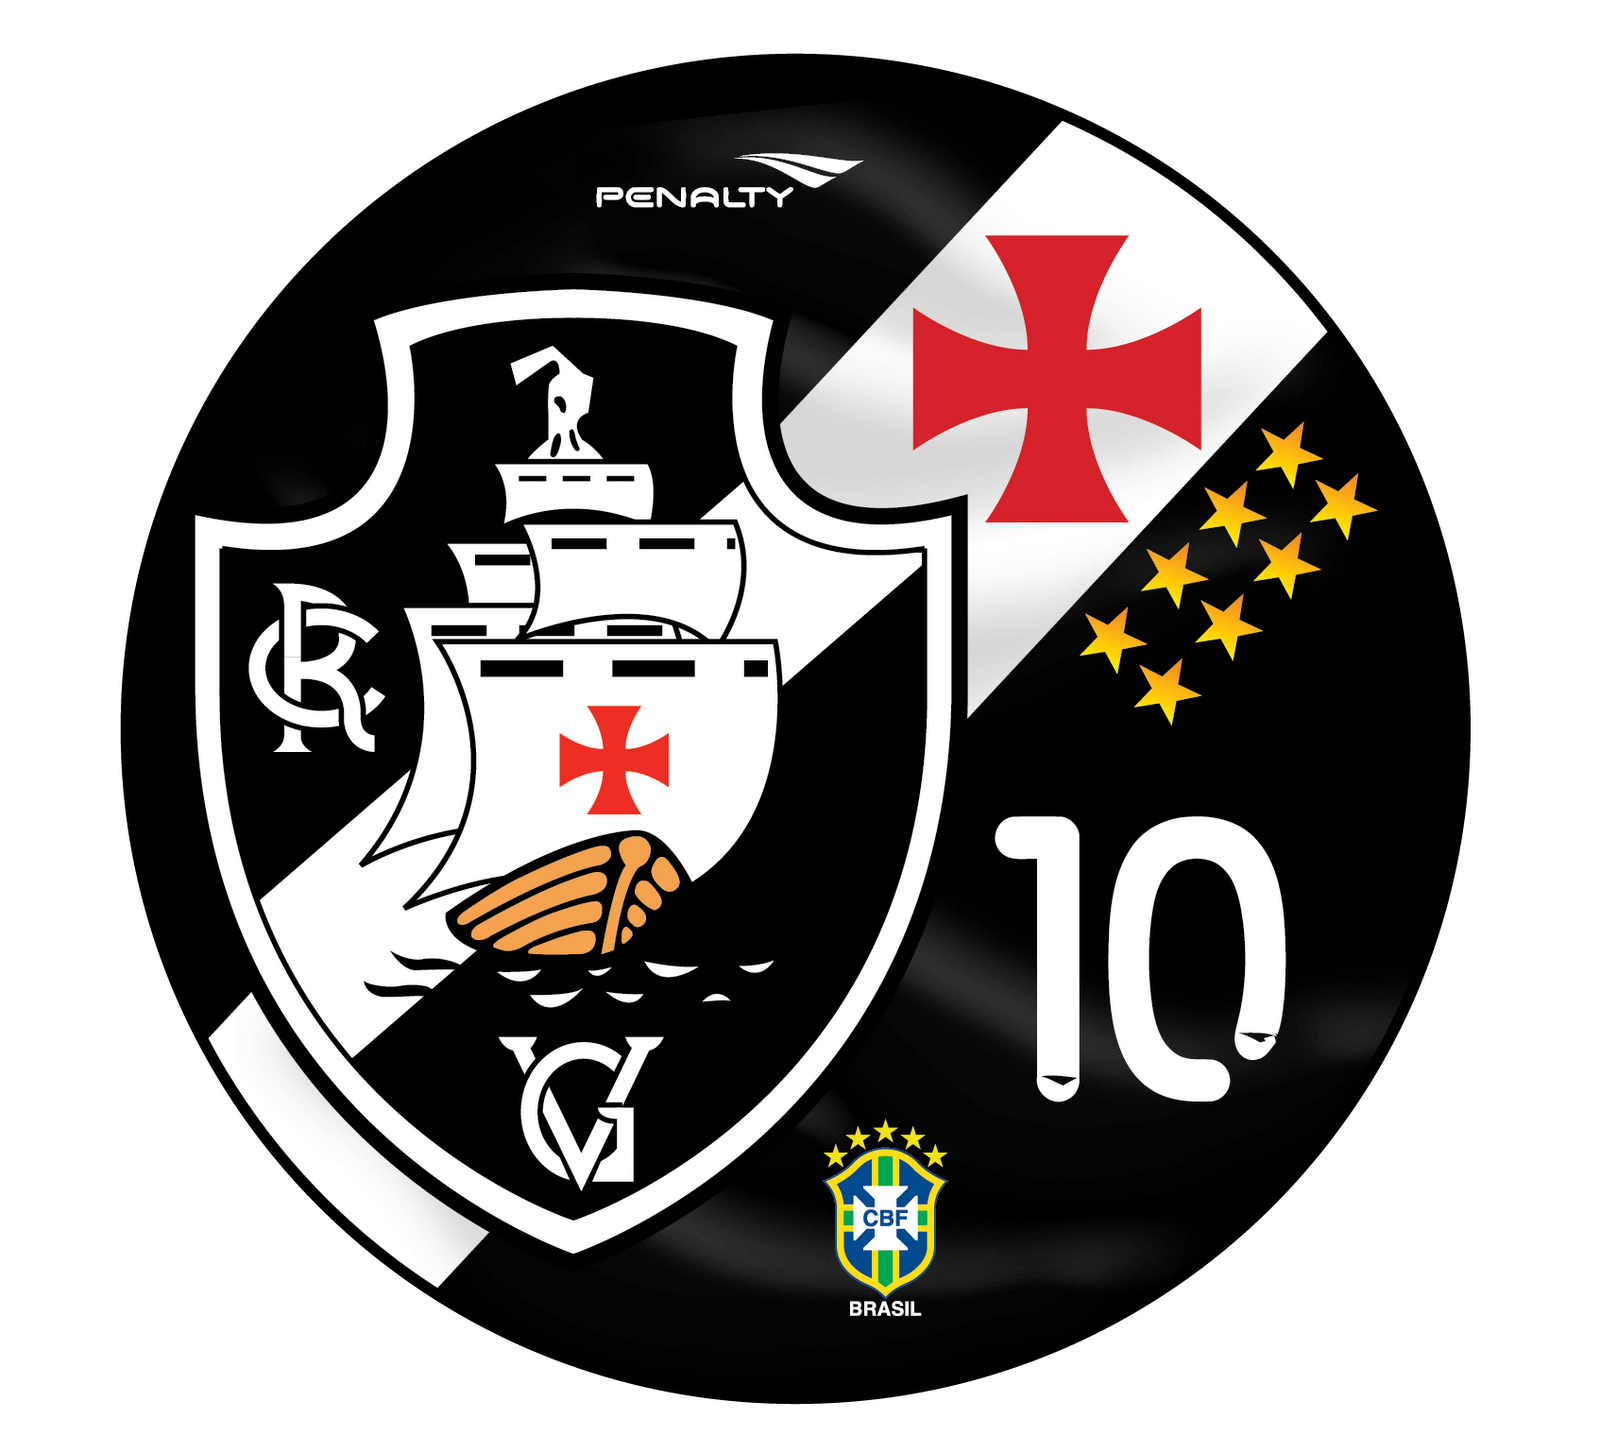 Fotos de Escudo - Escudo - Vasco da Gama - pág.2 - HD Wallpapers